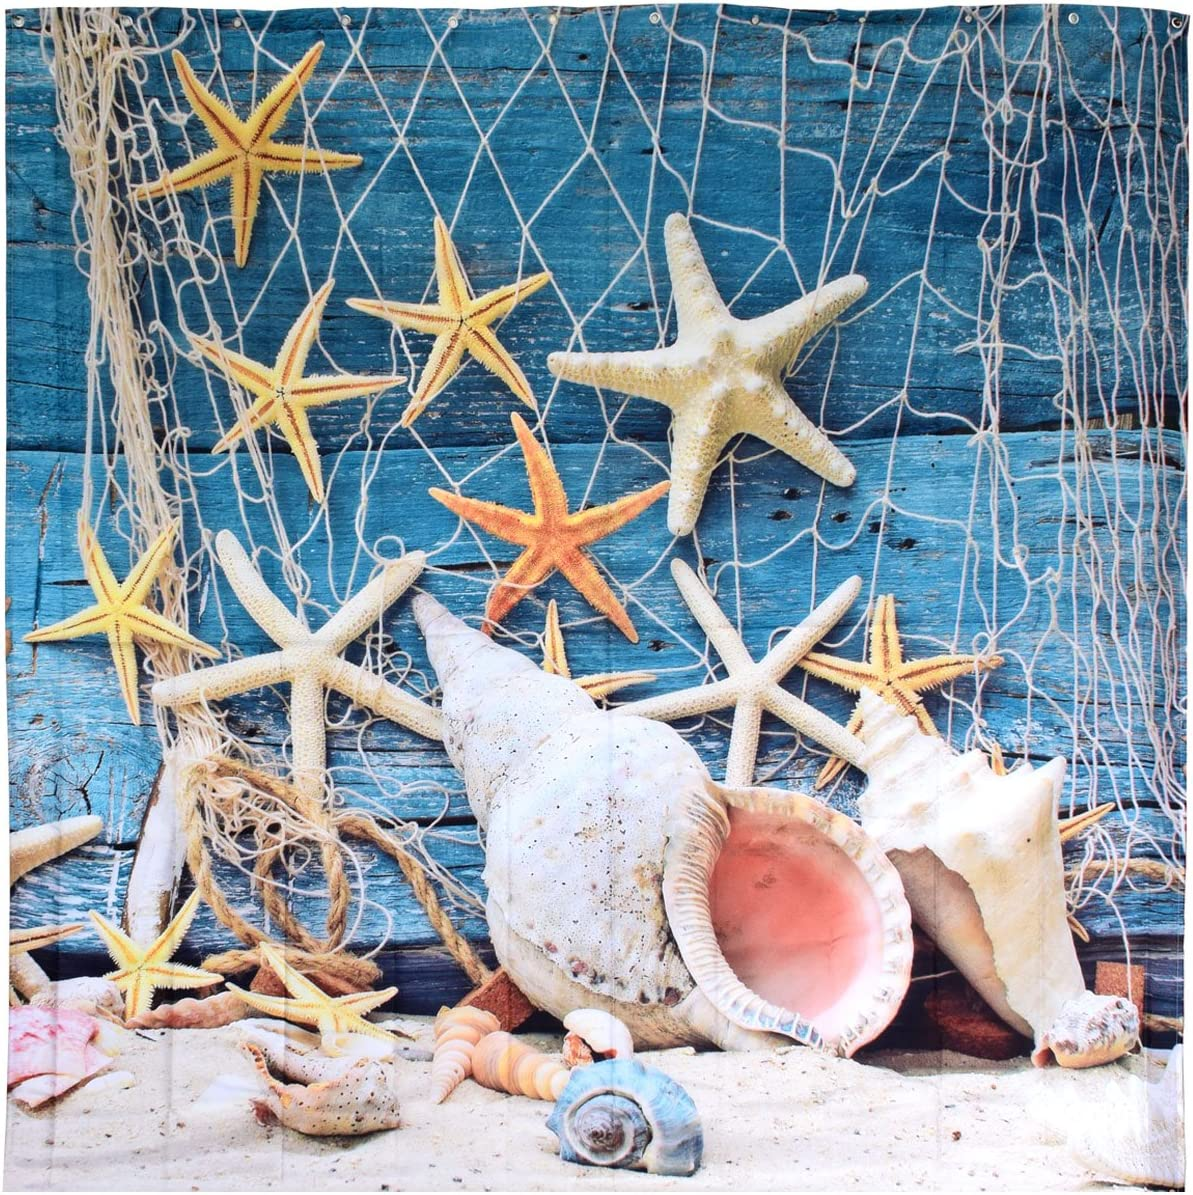 BROSHAN Beach Shower Curtains for Bathroom, Nautical Fishing Nets Seashells Conch Starfish on Wooden Board Ocean Bathroom Decor, Beach Waterproof Fabric Shower Curtain with Hooks